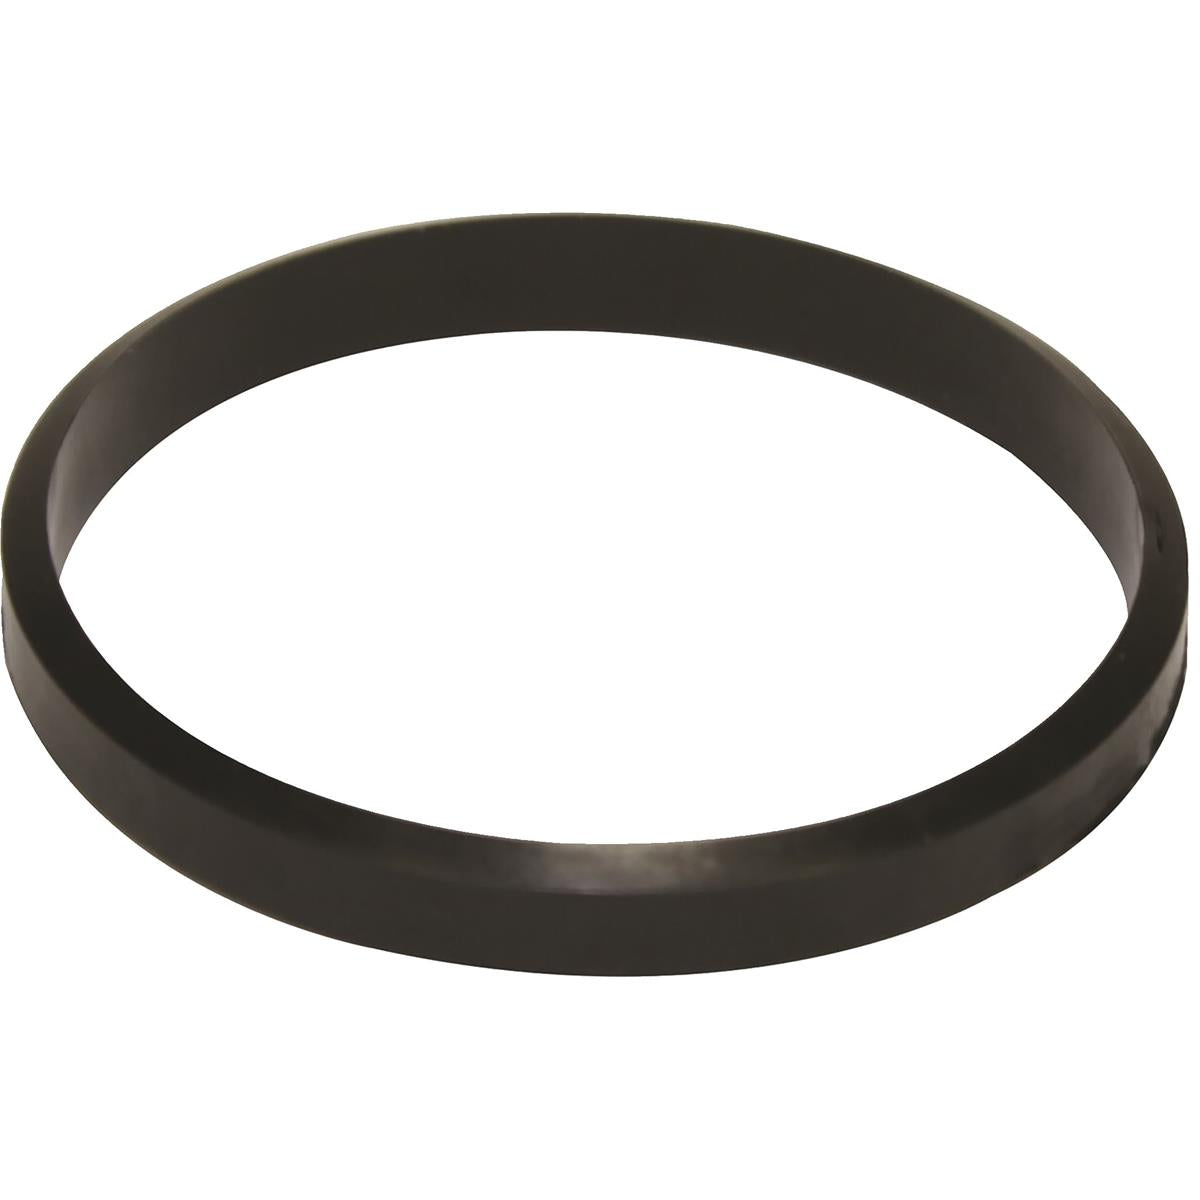 Jacto® Sprayer Replacement Pump Gasket